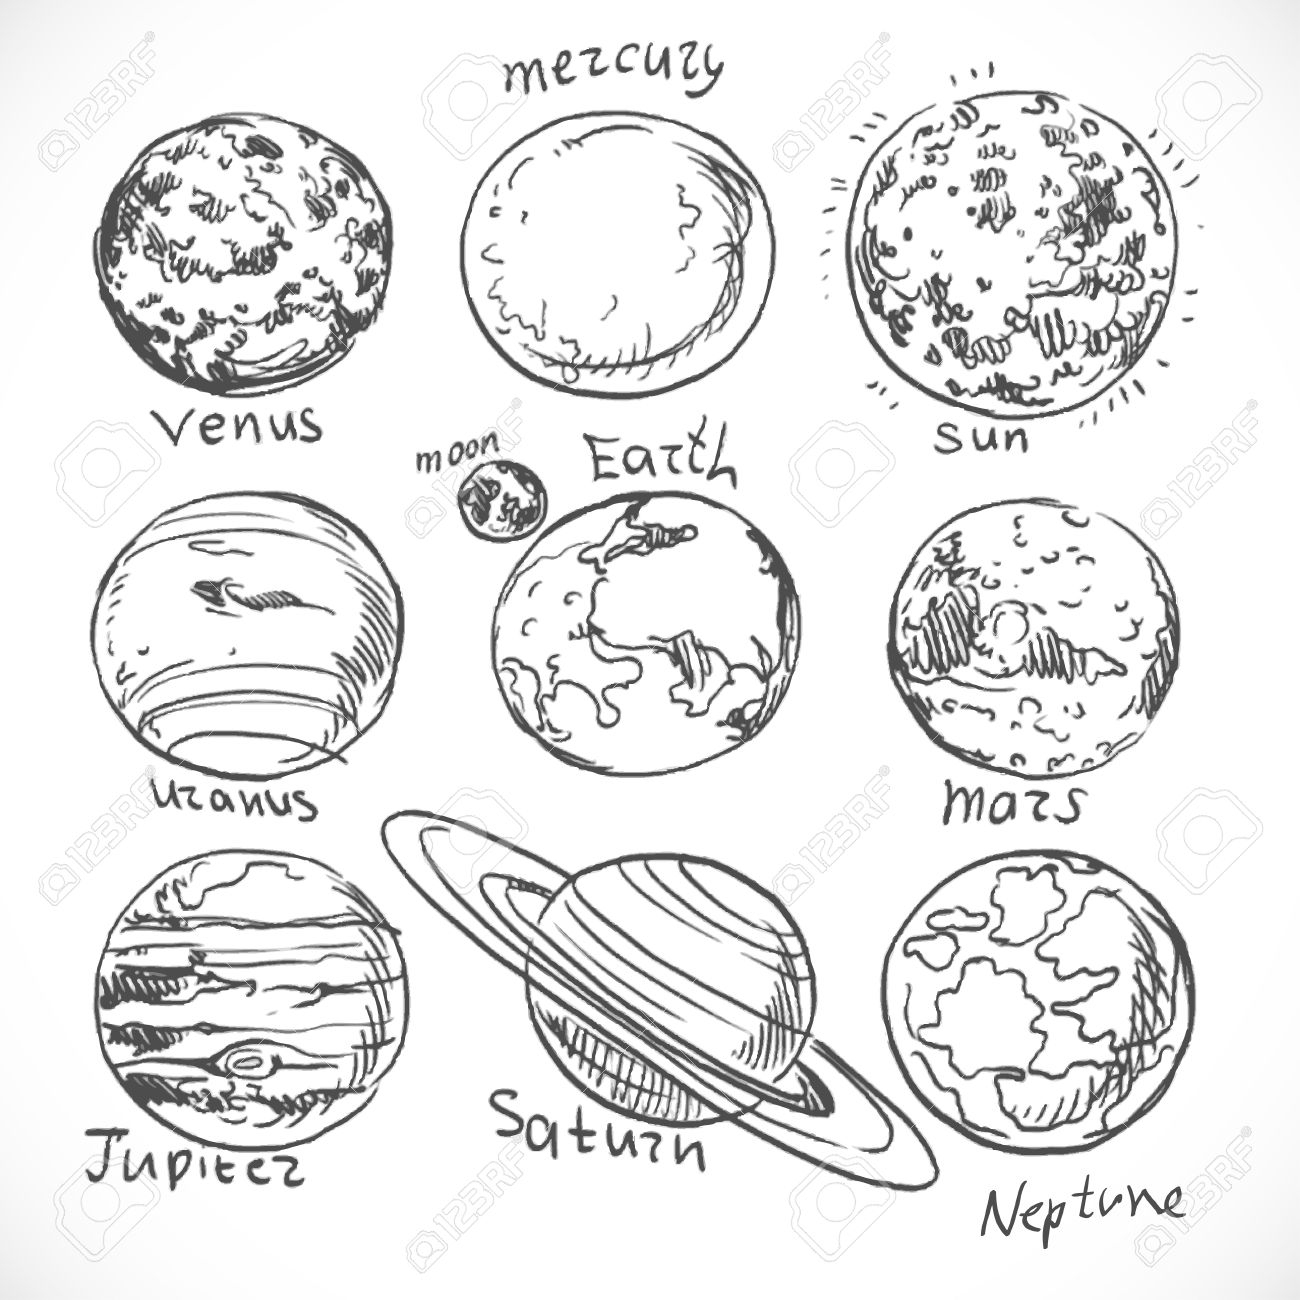 Doodle Planets Of The Solar System Isolated On White Background Stock Vector